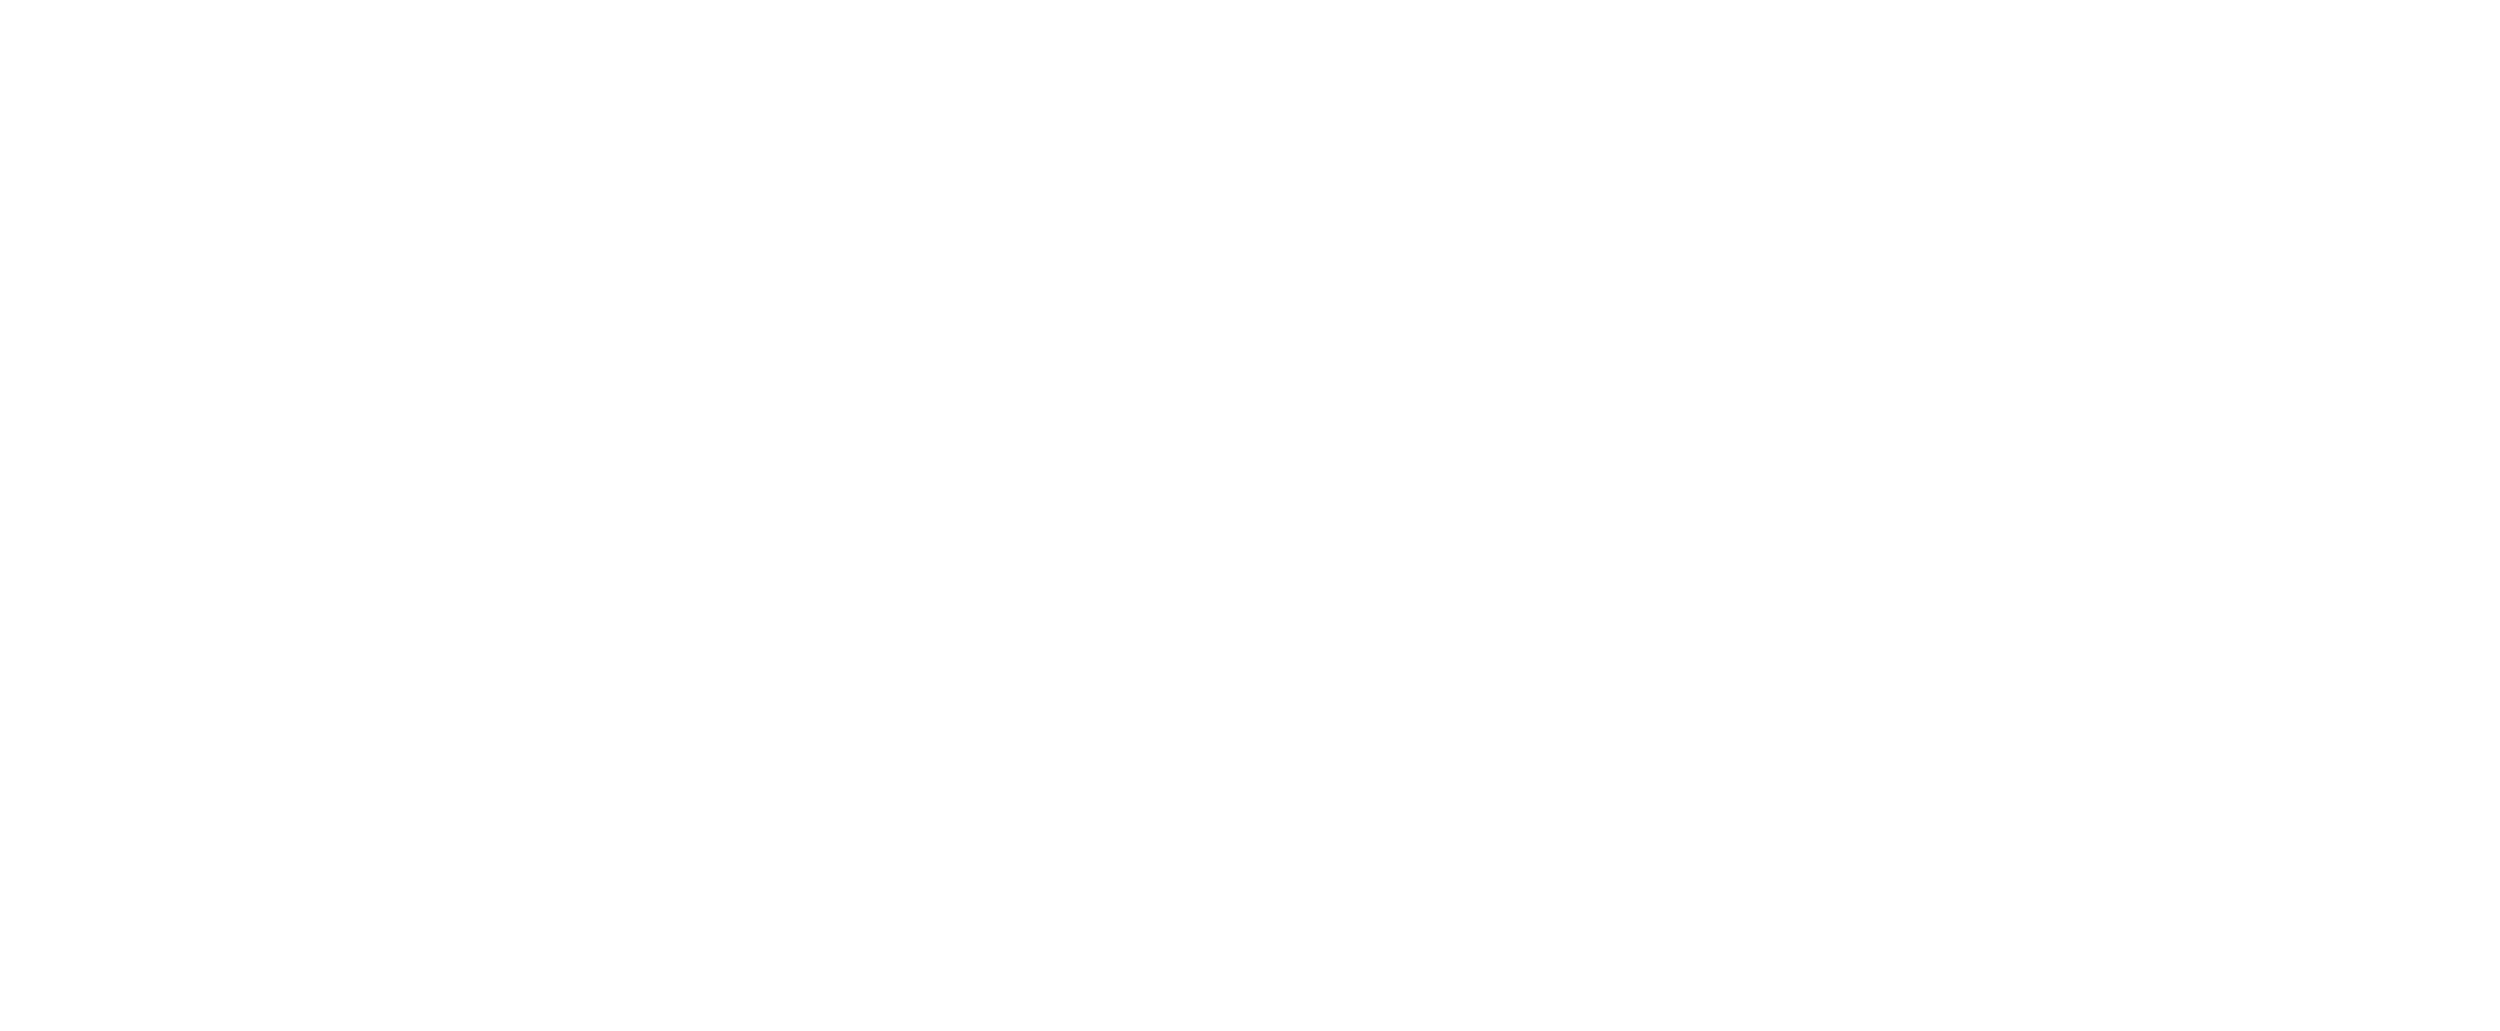 TheValleyGathering.png